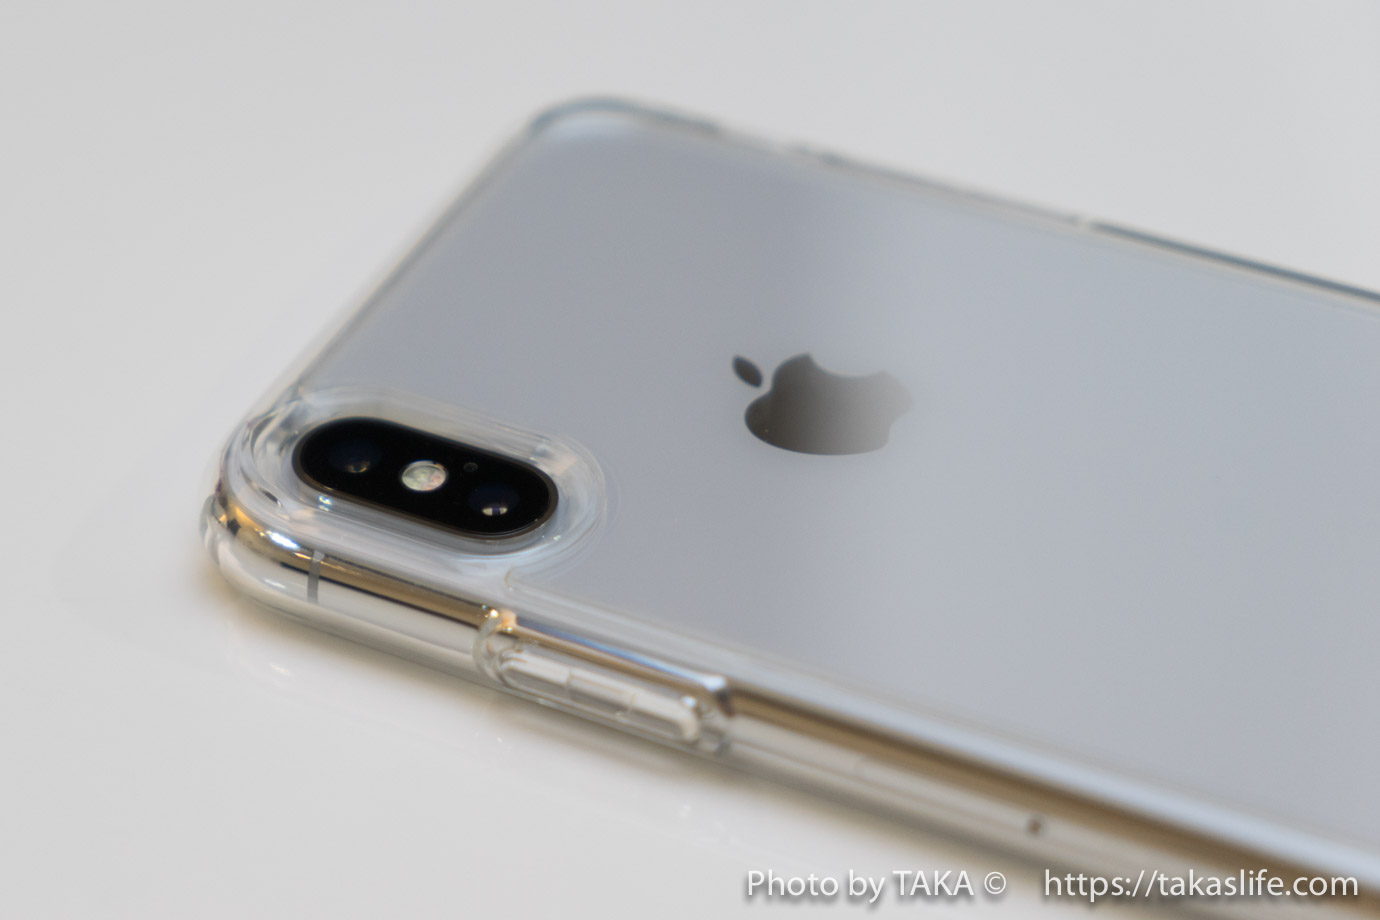 Spigen iPhone X ケース 09 20171113 215633